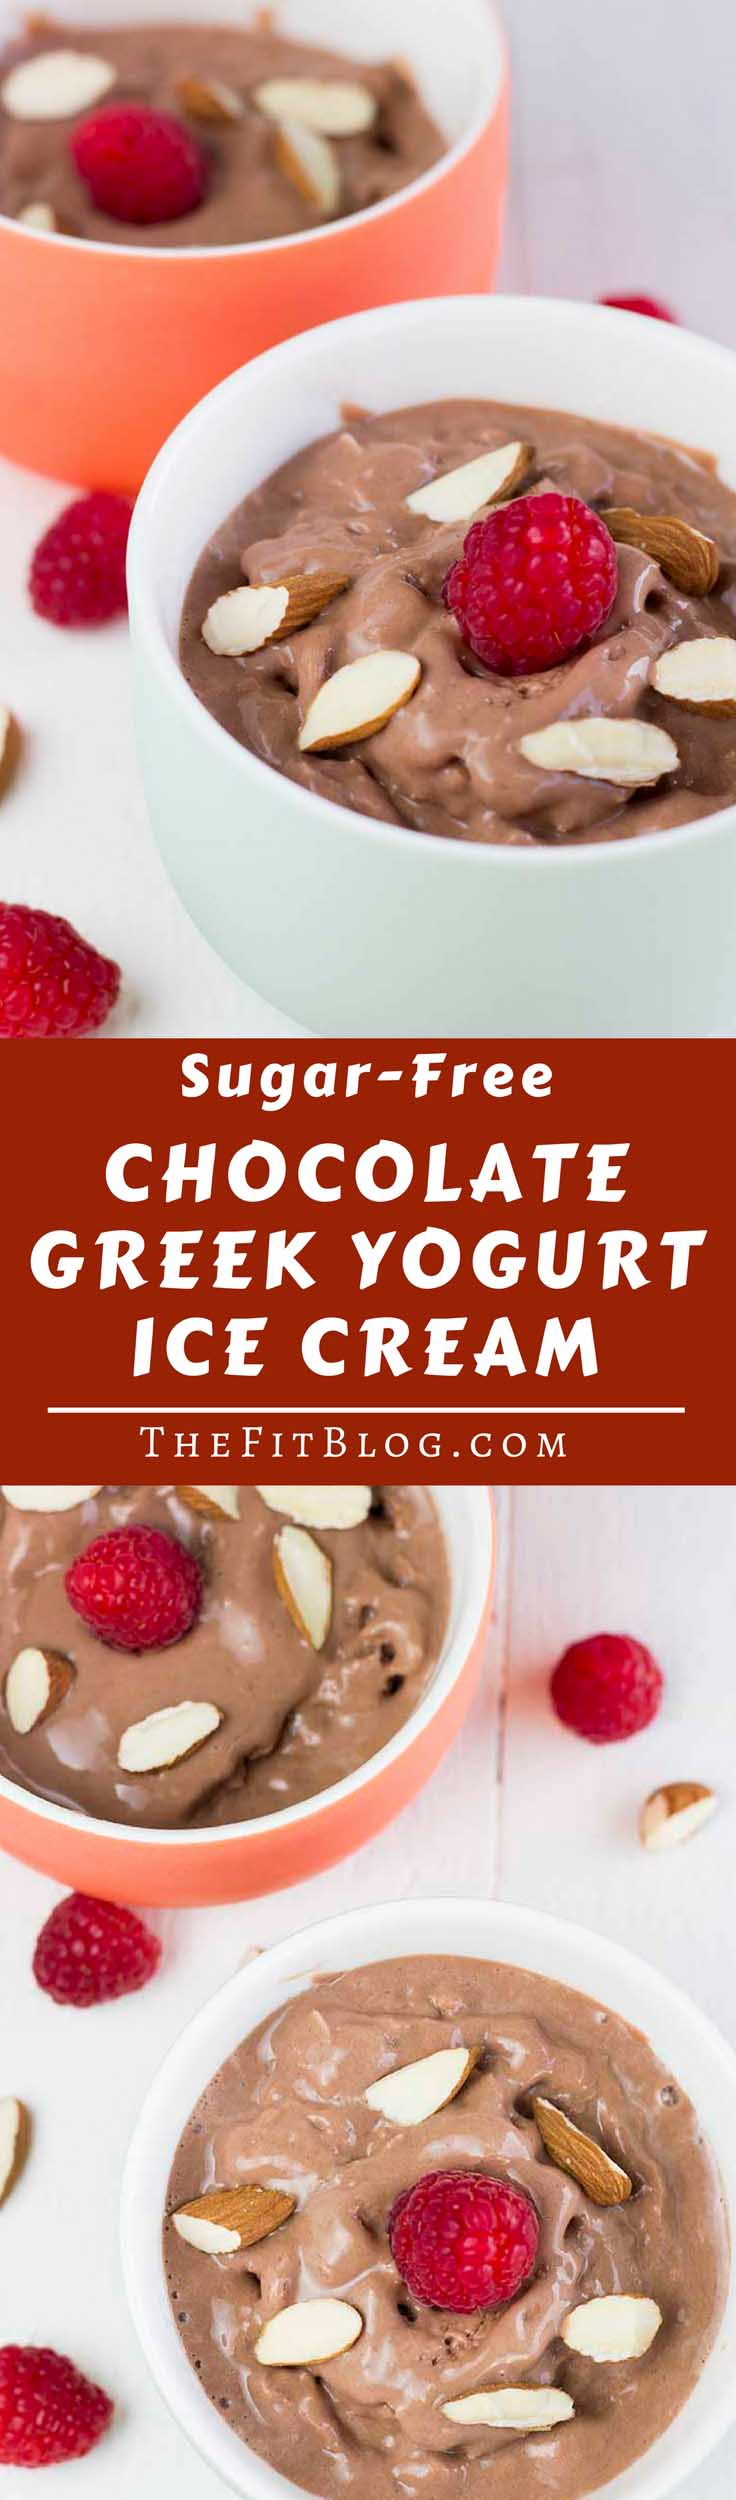 This delicious Low Carb Chocolate Greek Yogurt Ice Cream is high in protein and low in calories. The perfect snack for a hot day or after a hard workout #healthyeating #healthyrecipes #diabetesdiet #diabetesrecipes #diabeticdiet #diabeticfood #diabeticrecipe #diabeticfriendly #lowcarb #lowcarbdiet #lowcarbrecipes